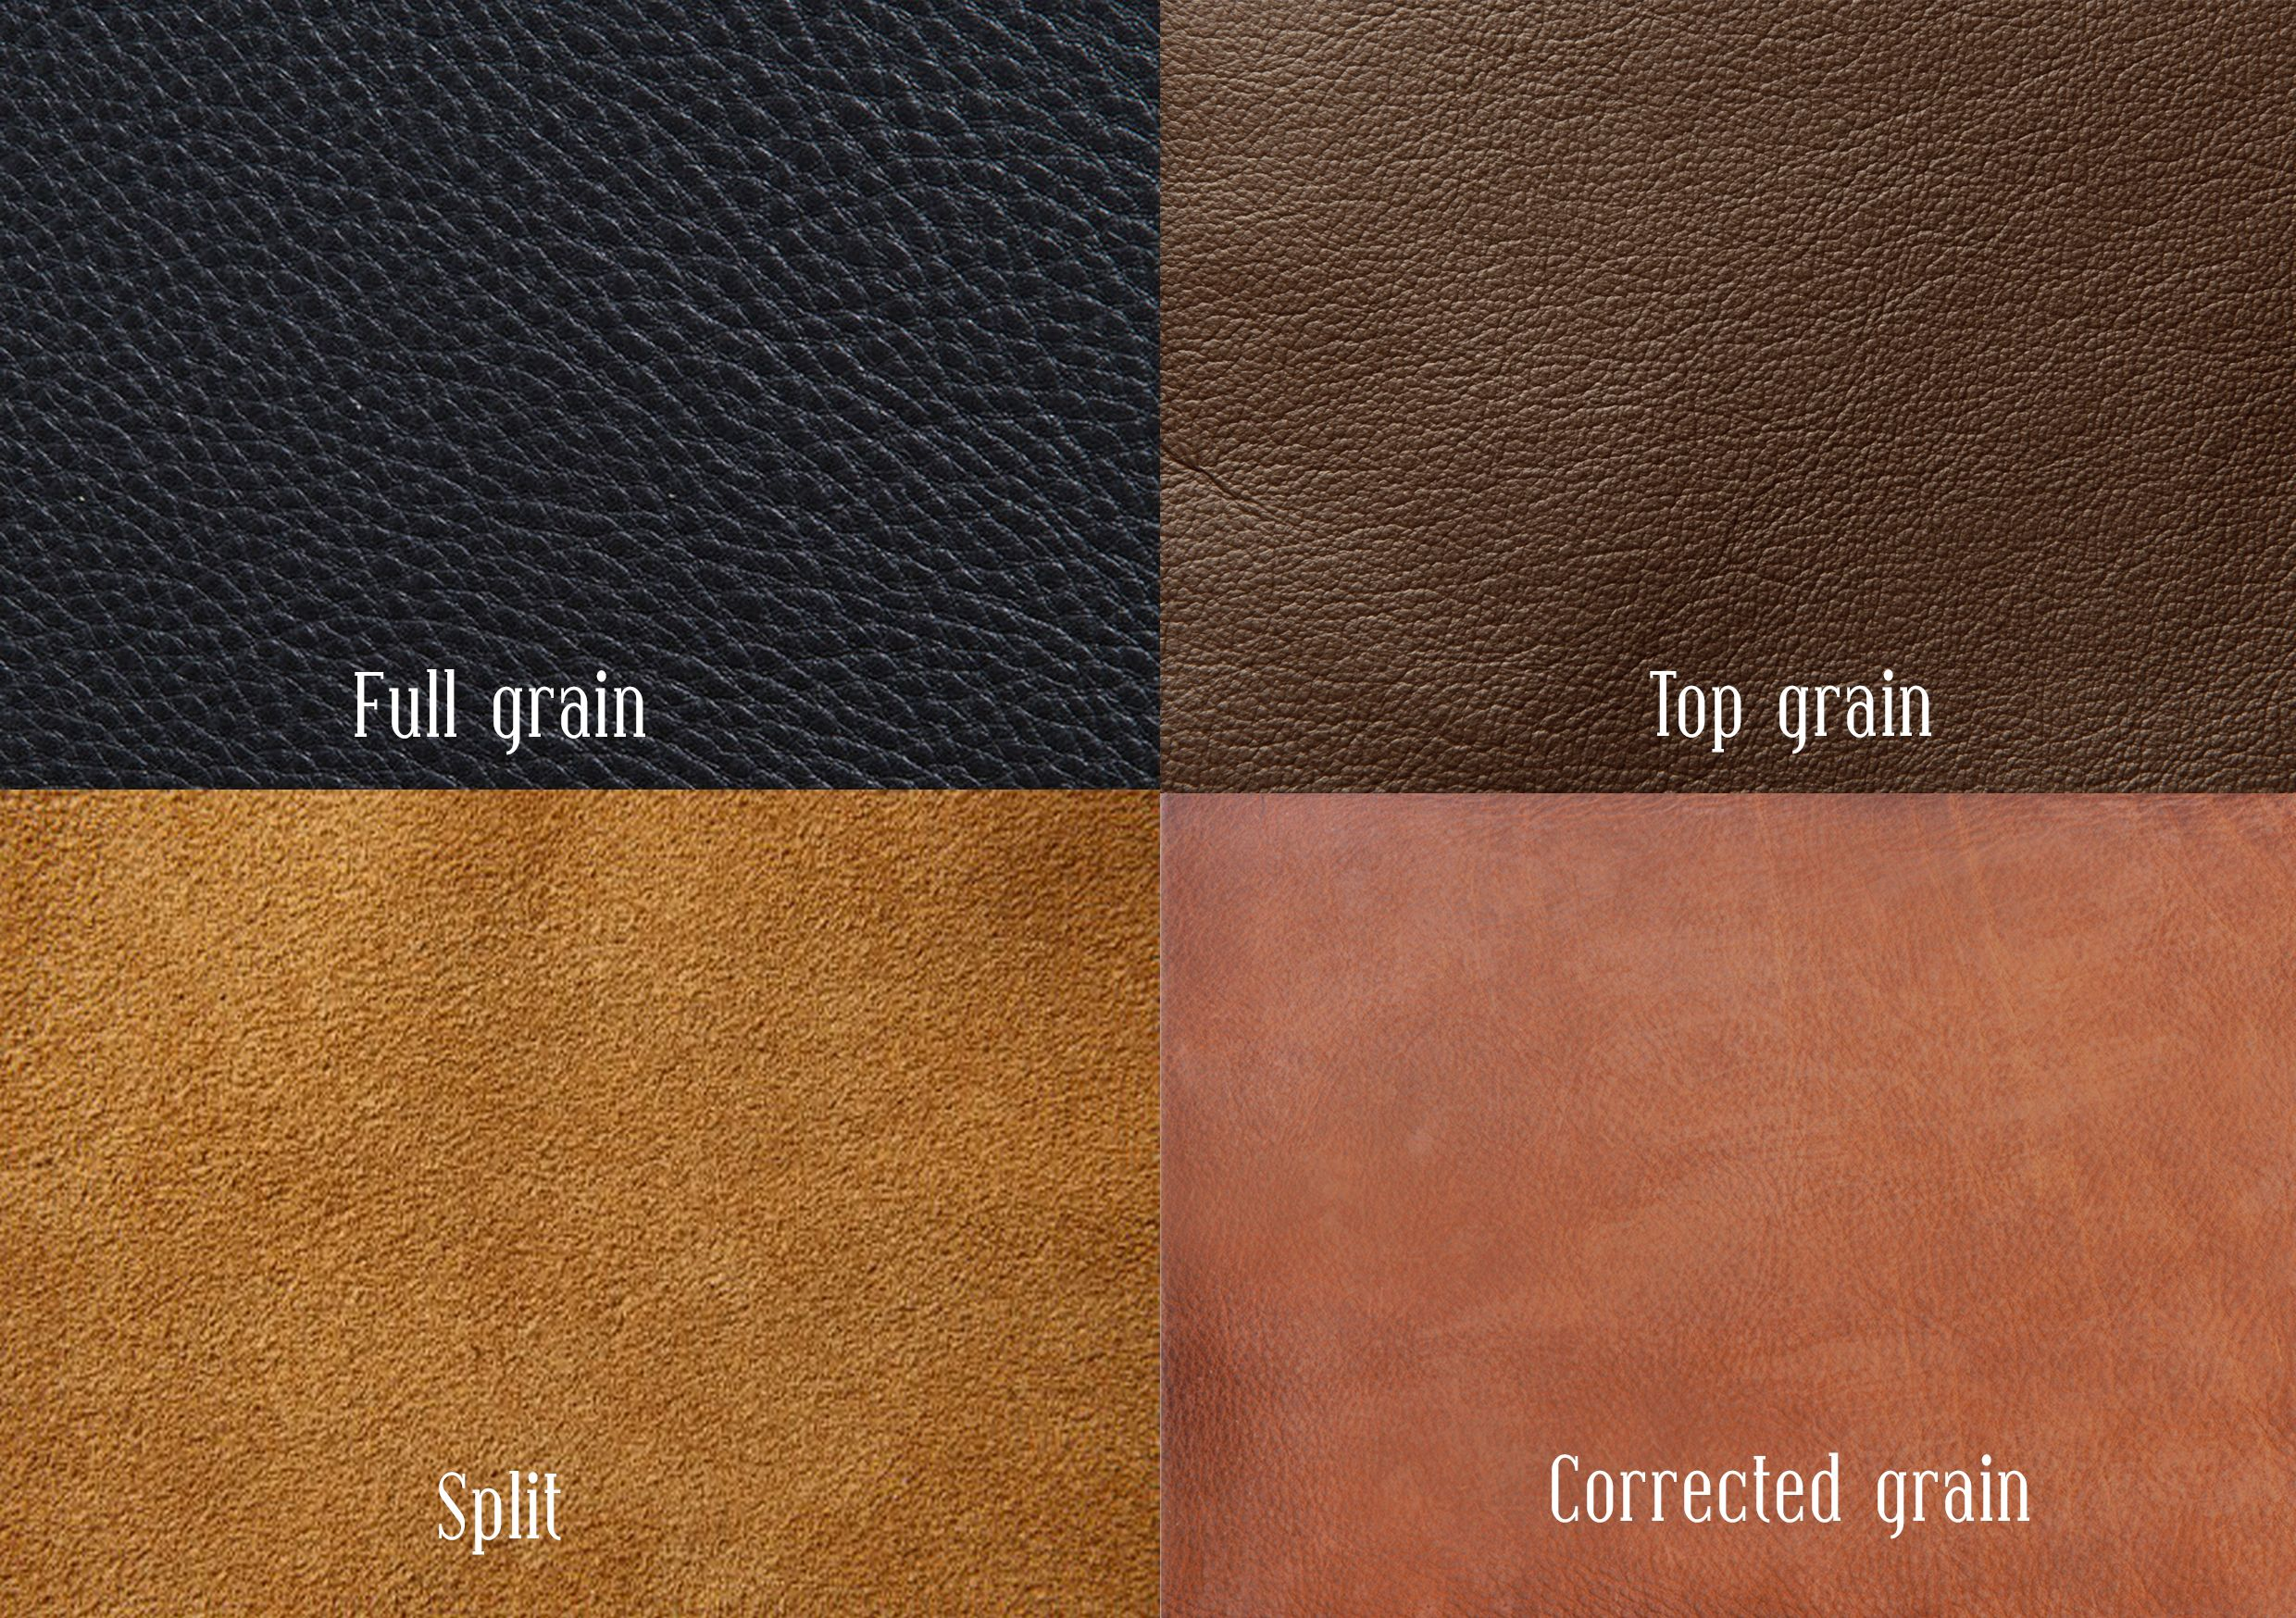 Knowledge about the process that goes into making that perfect #handmade-leather bag gives you the advantage in style,improves your taste and makes sure this investment shines for years to come.